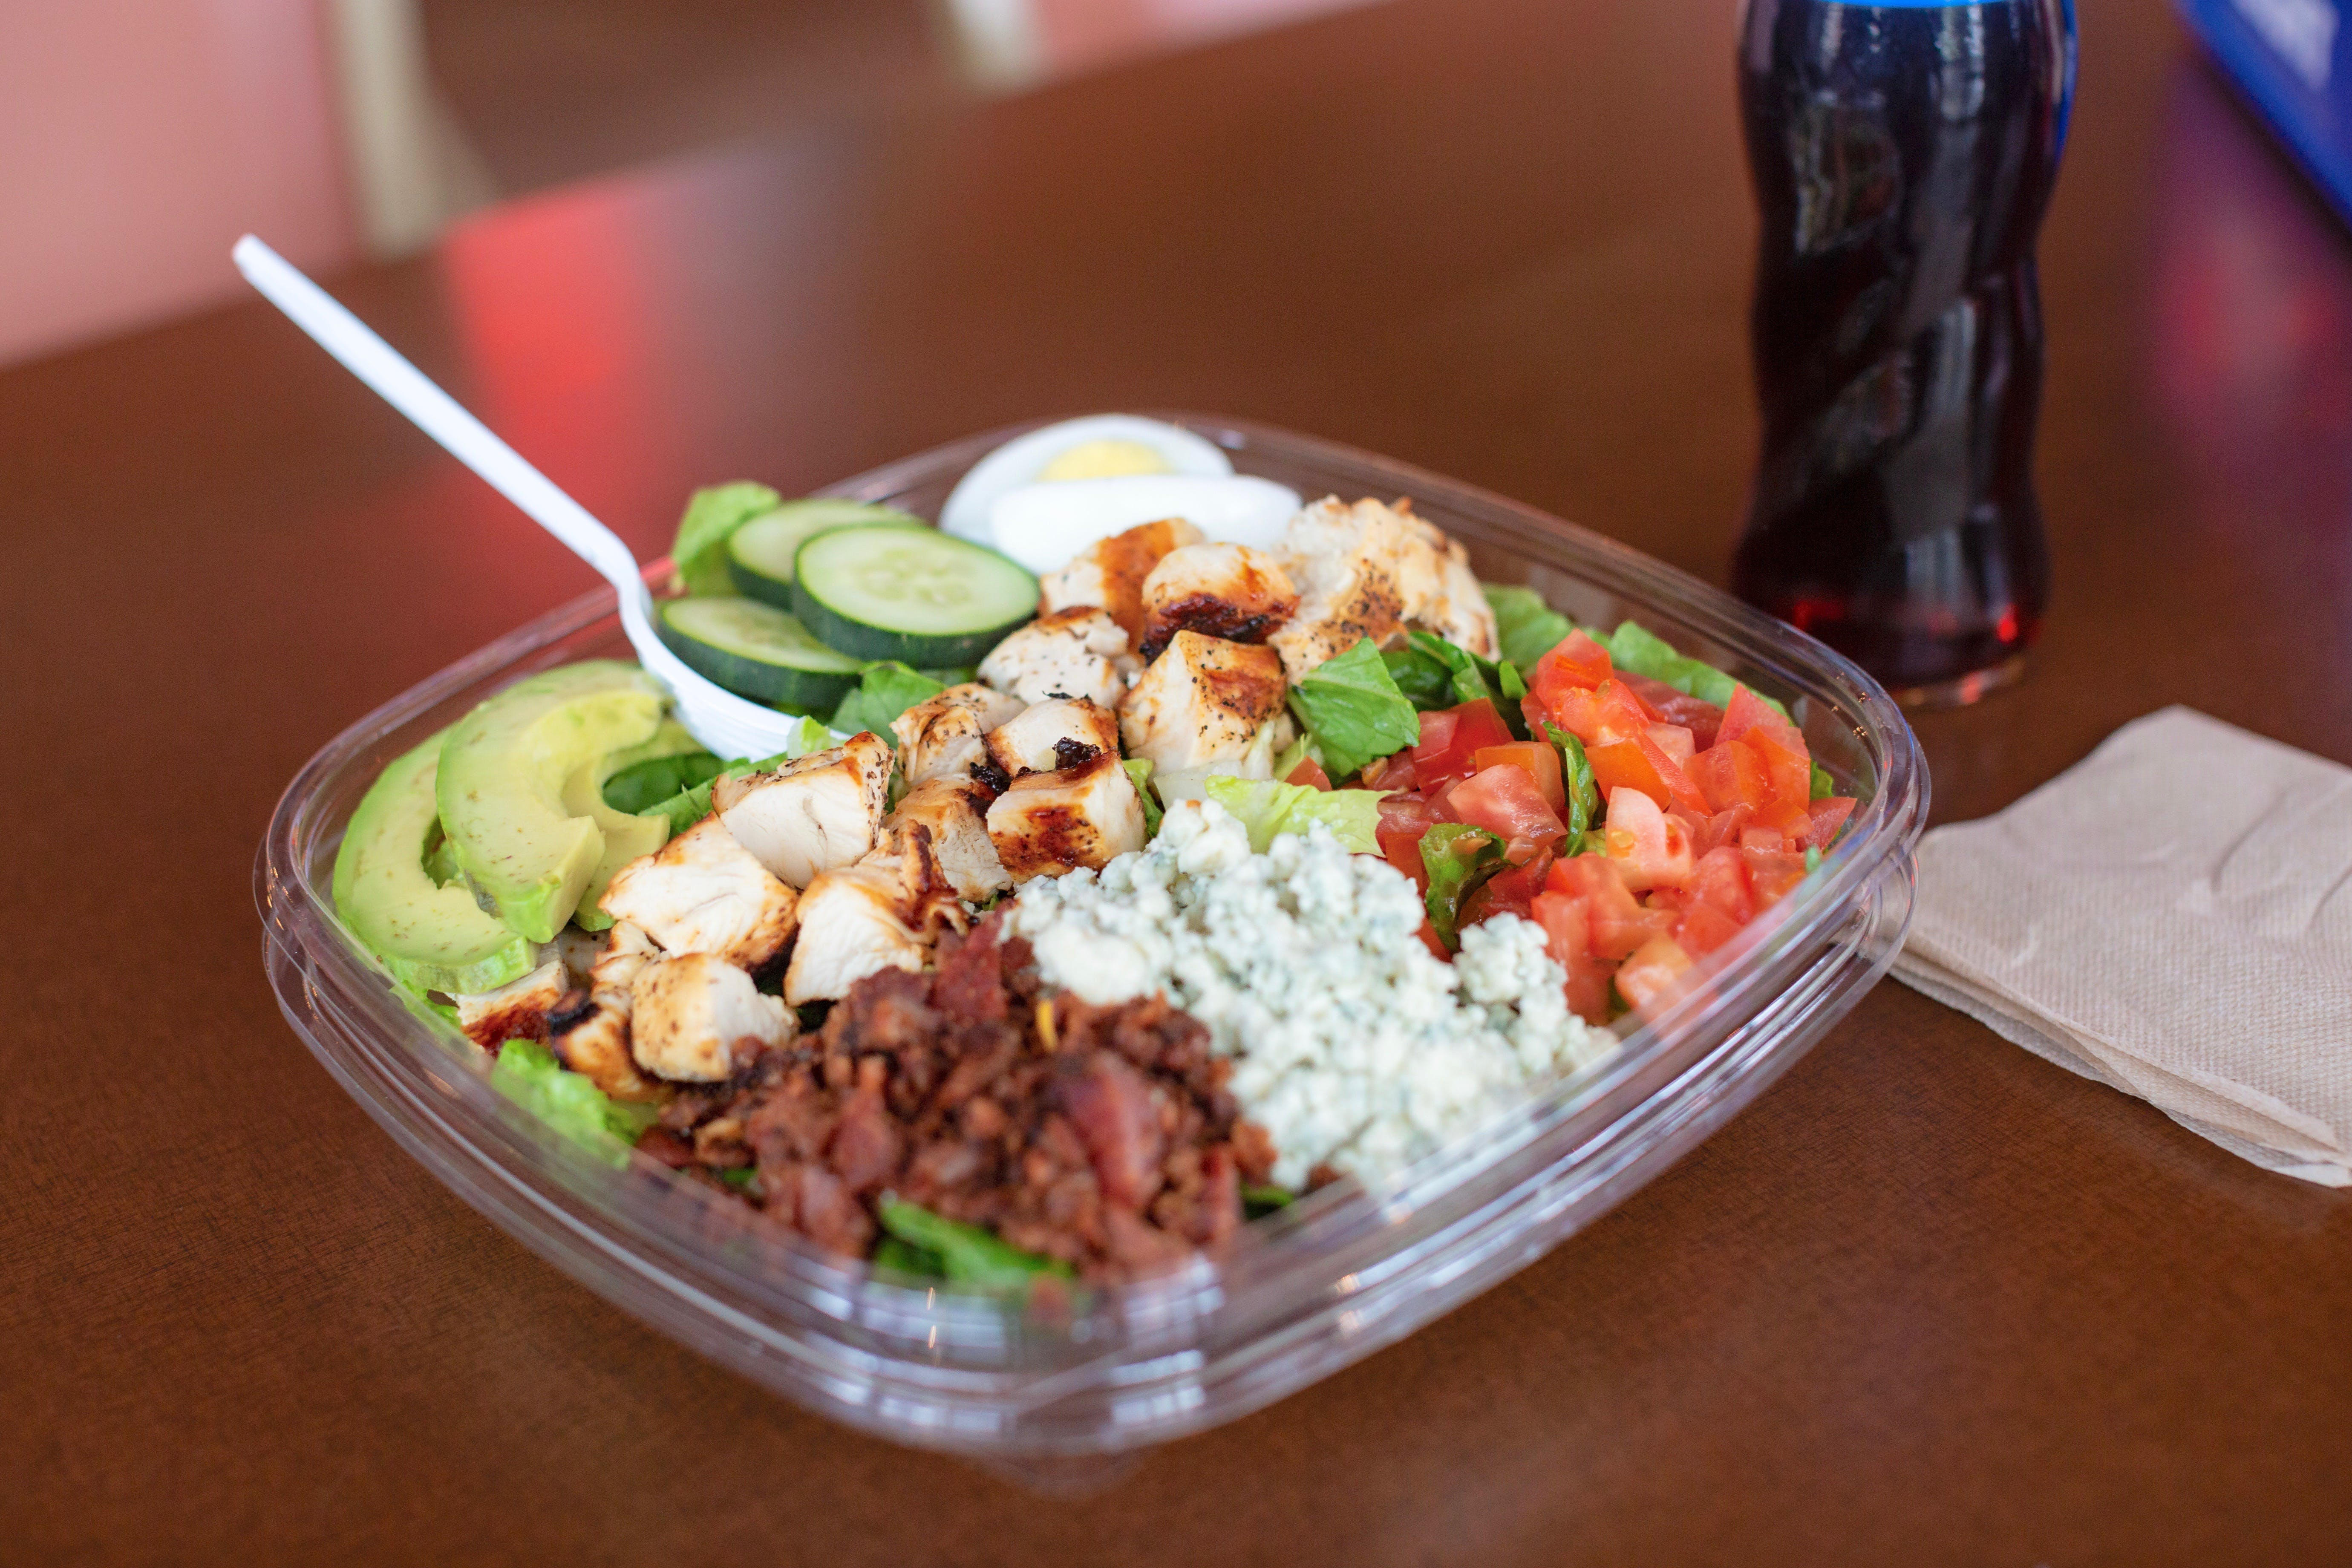 Malibu Cobb Salad from Burgers by Biggs in Lawrence, KS